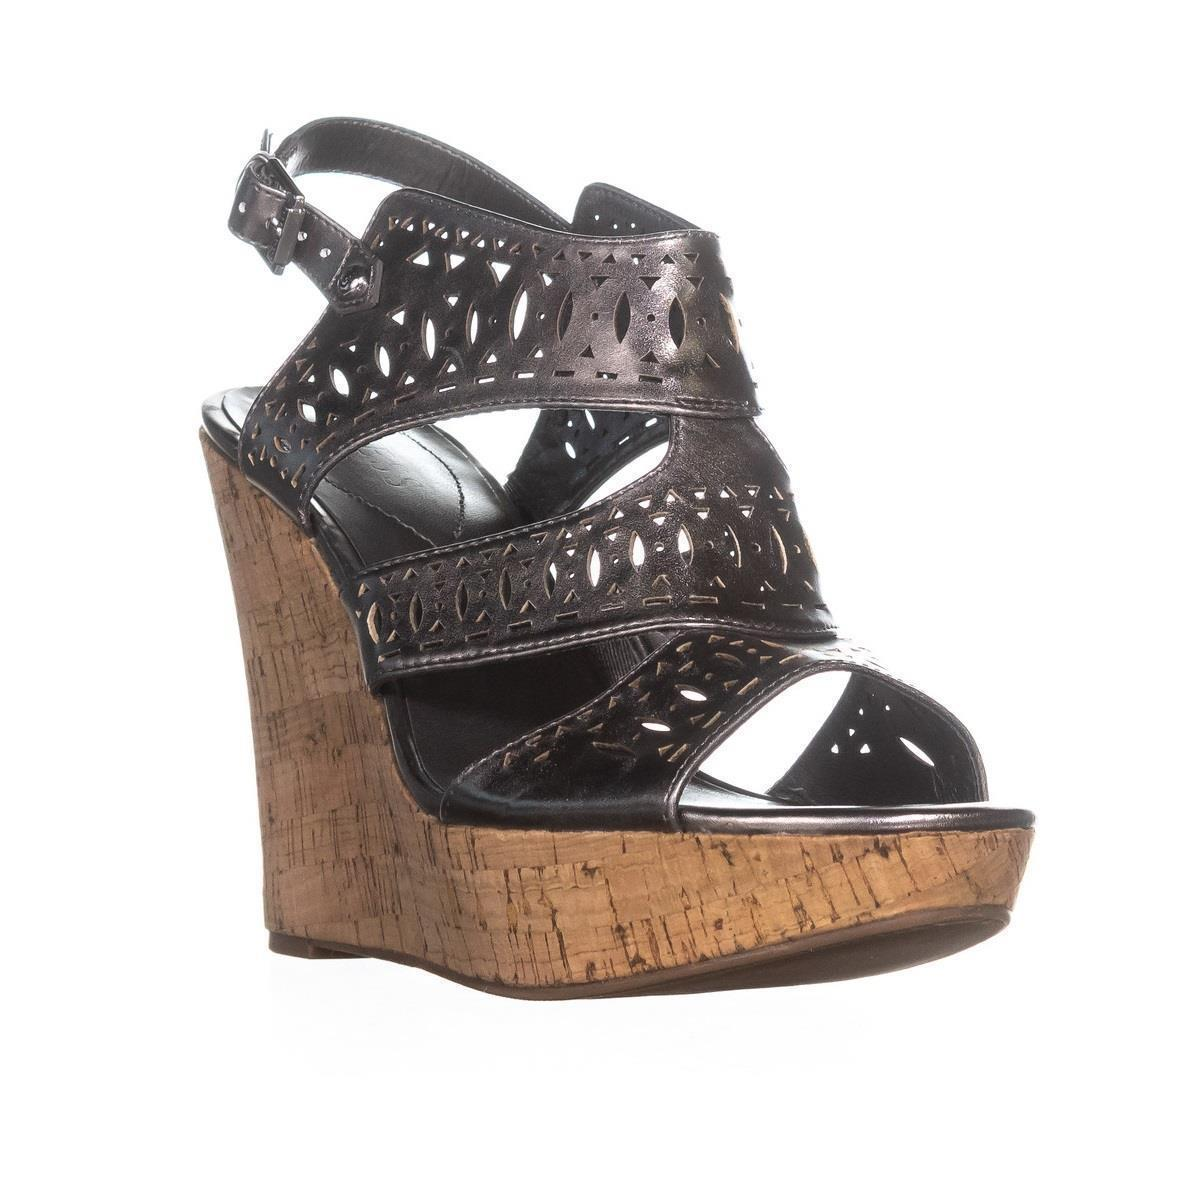 9ee131db066b Guess silver vannora ankle strap heels pewter wedges size jpg 960x960 Pewter  wedges